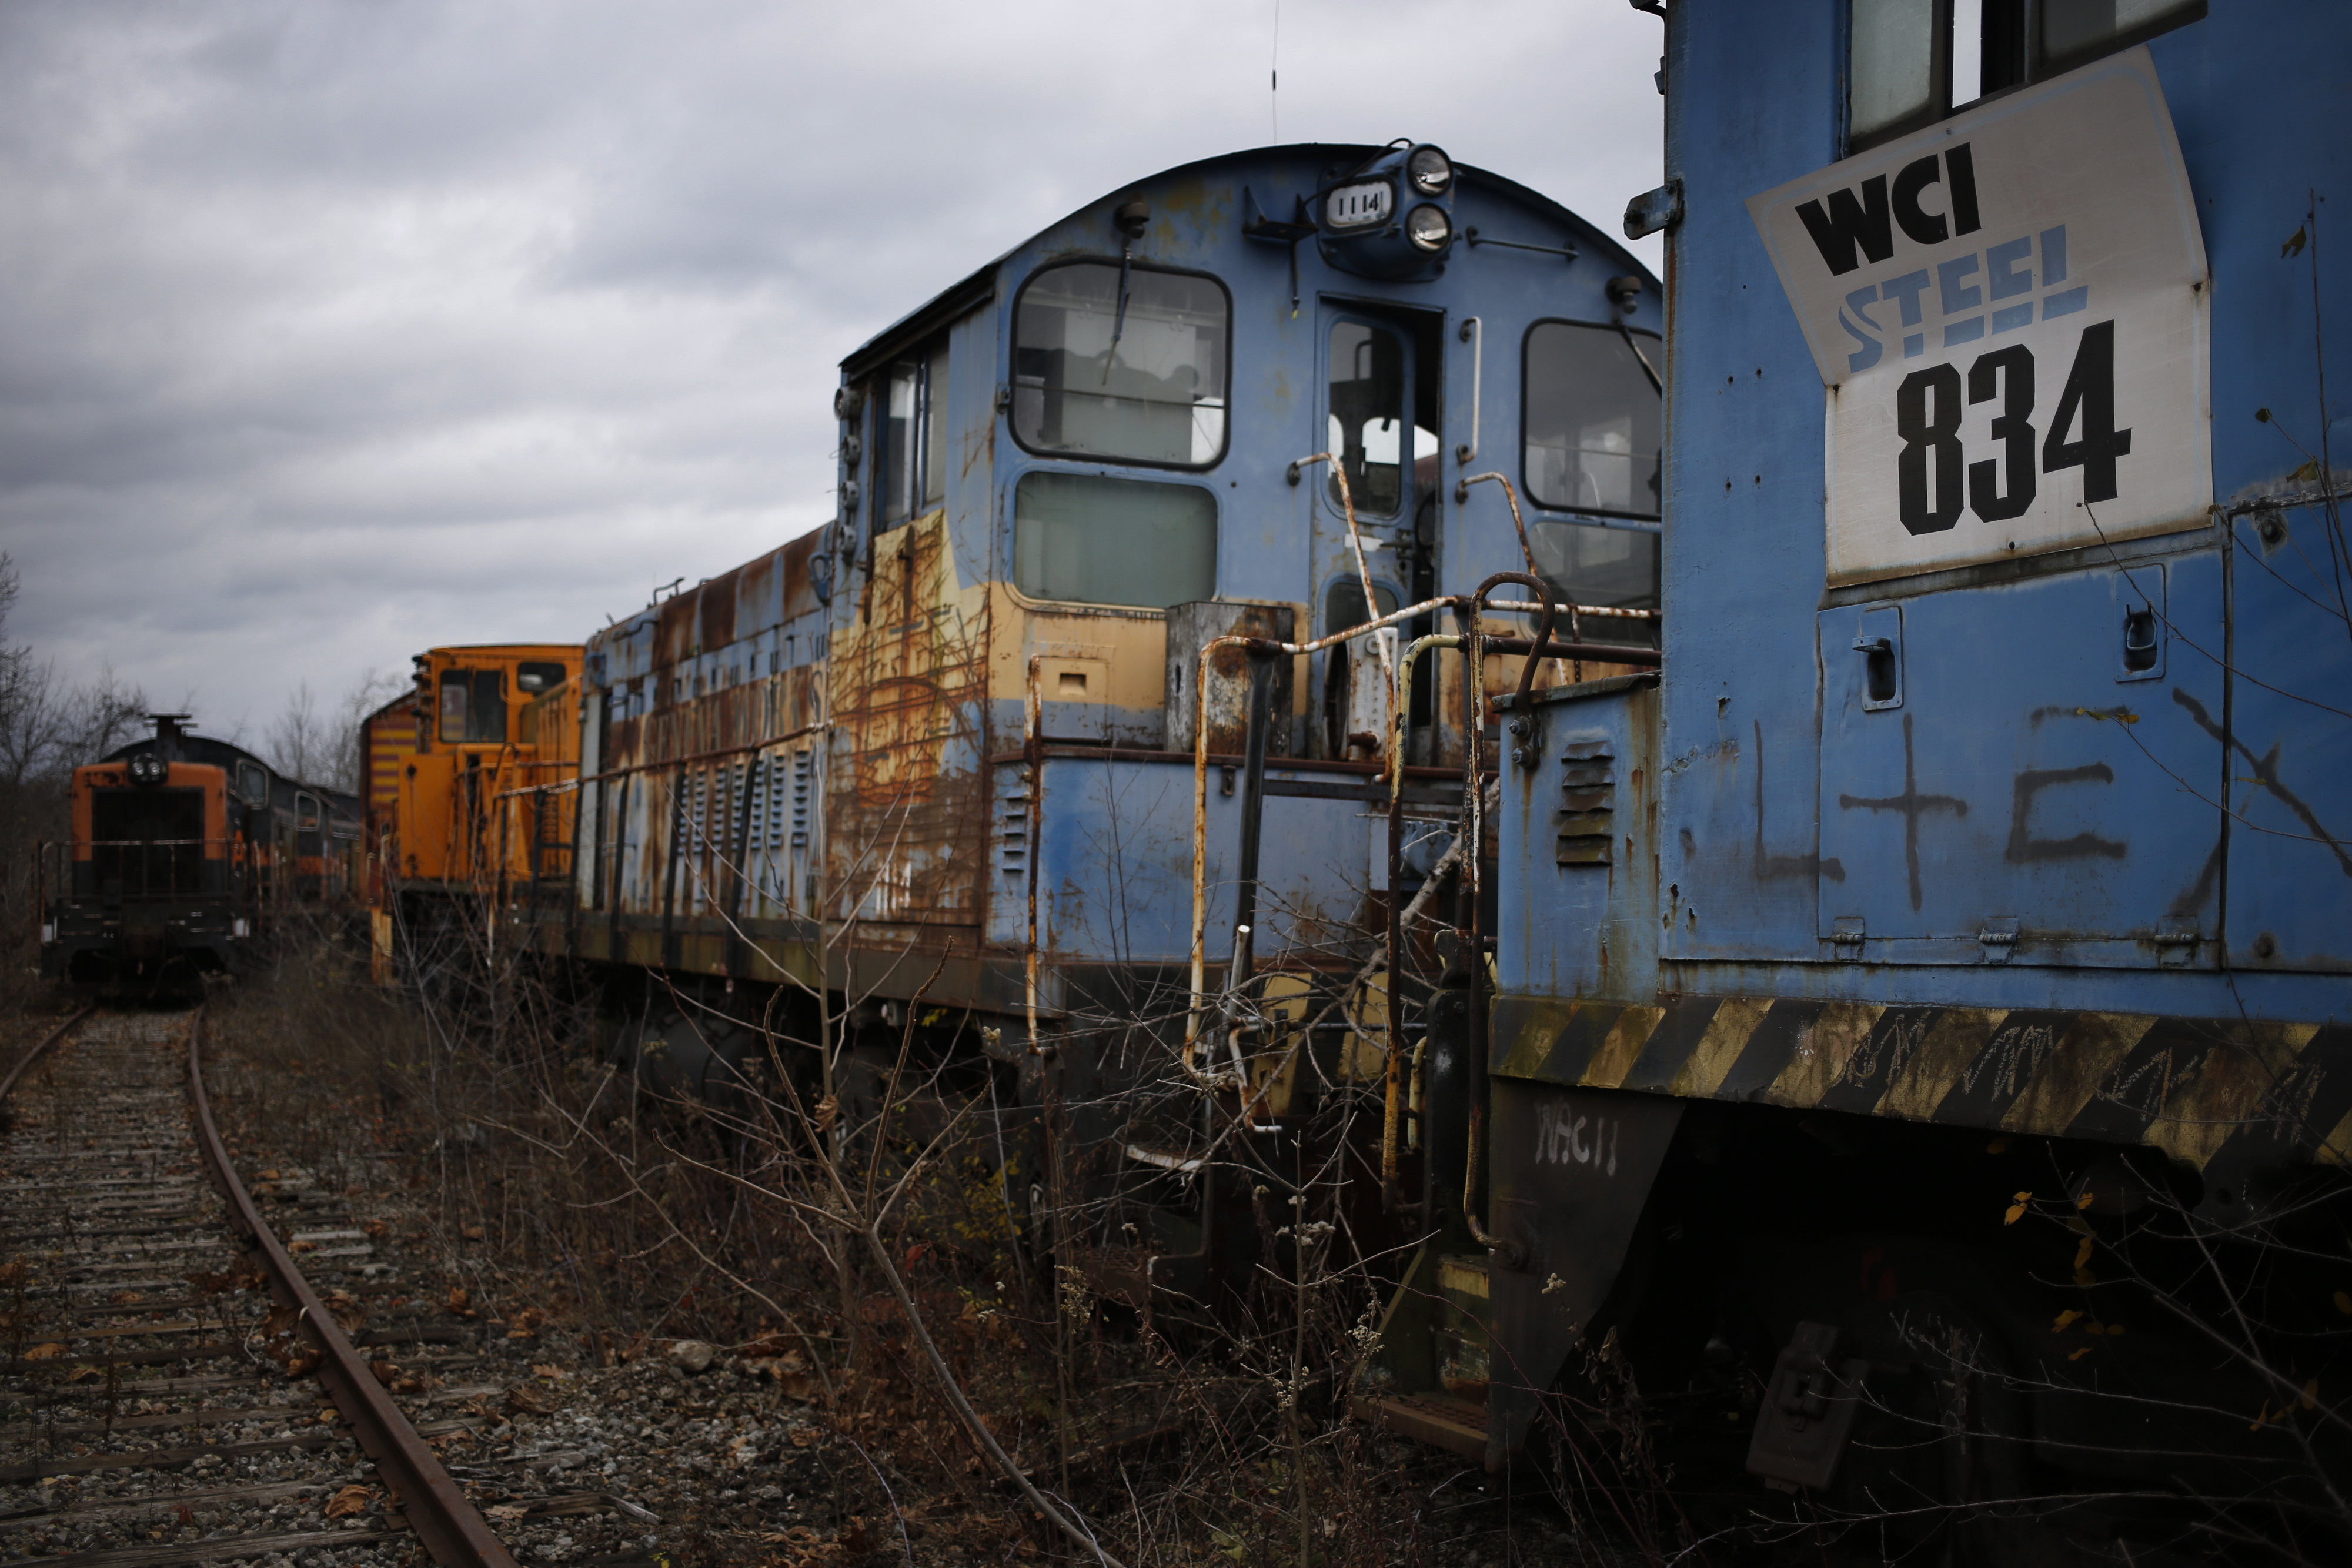 Abandoned switching locomotives sit parked on the grounds of the former U.S. Steel McDonald Works steel mill near Youngstown in Campbell, Ohio, U.S., on Tuesday, Dec. 1, 2016.